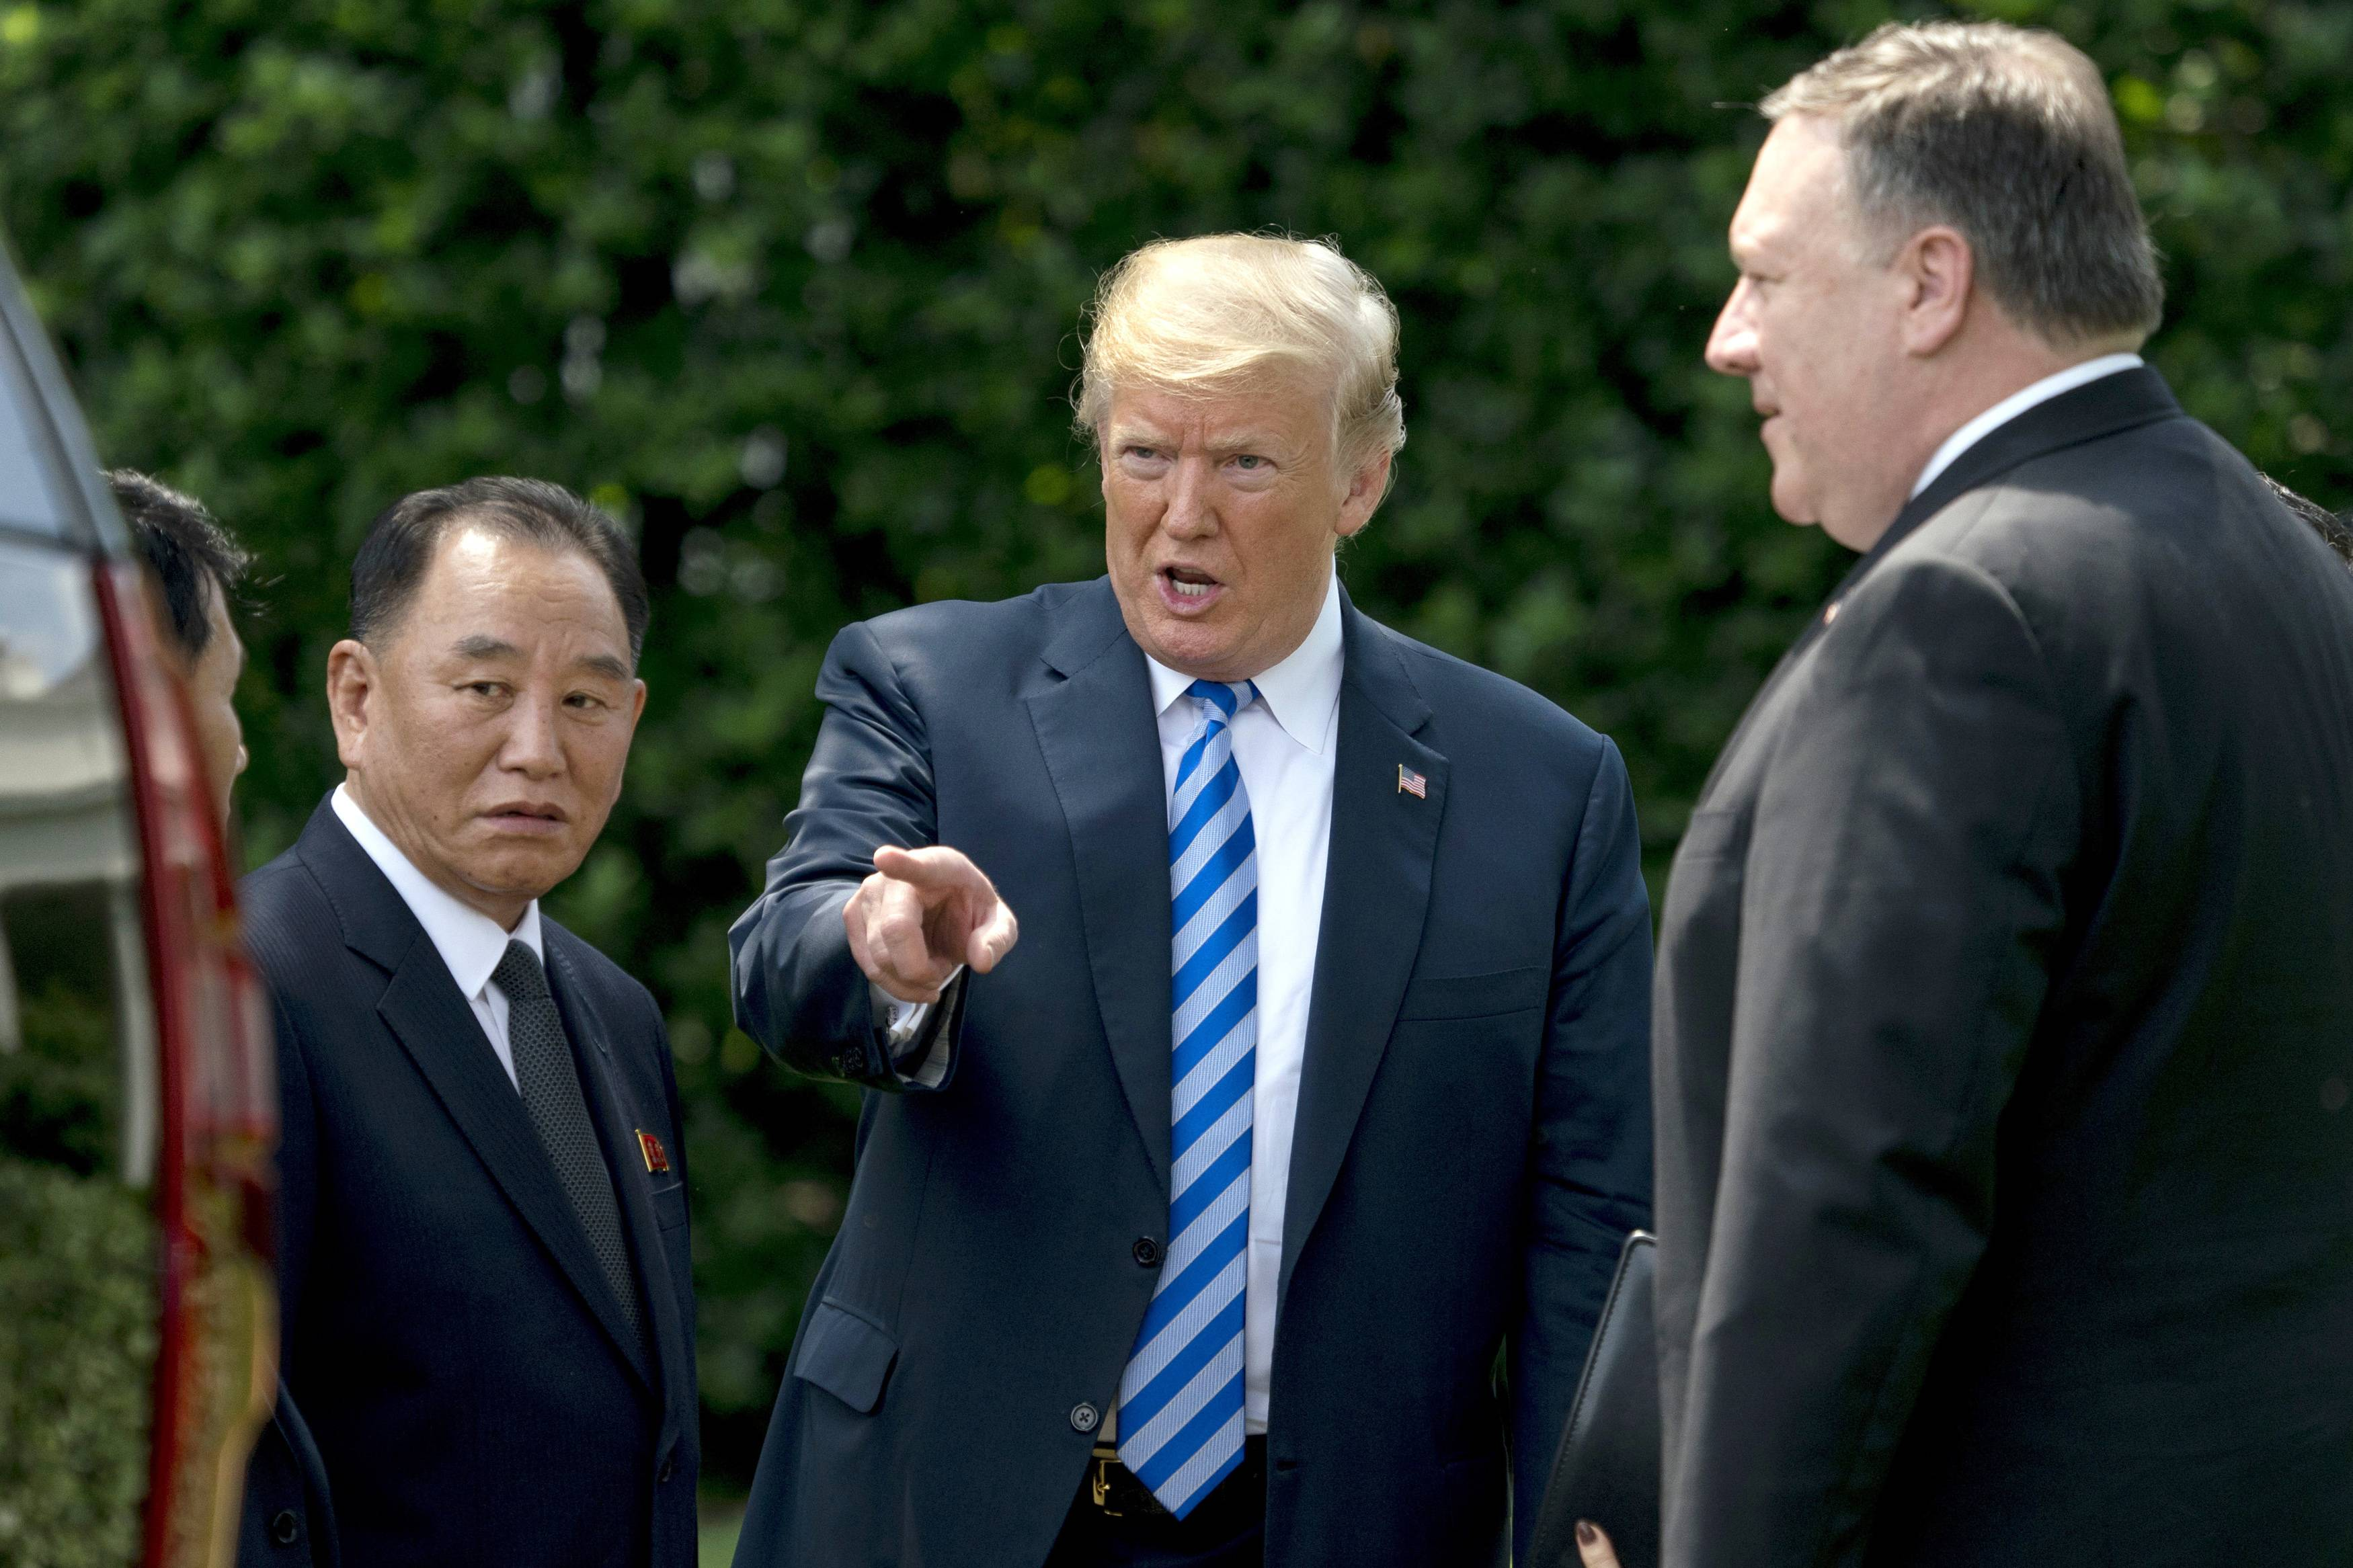 FILE -- In this June 1, 2018, file photo, President Donald Trump, center, talks with Kim Yong Chol, left, former North Korean military intelligence chief and one of leader Kim Jong Un's closest aides, and Secretary of State Mike Pompeo as they walk from their meeting in the Oval Office of the White House in Washington. In recent weeks it's become clear that Donald Trump wants to meet with Kim Jong Un again, and the North Korean leader has told the White House he'd like more face-to-face talks with the American president.